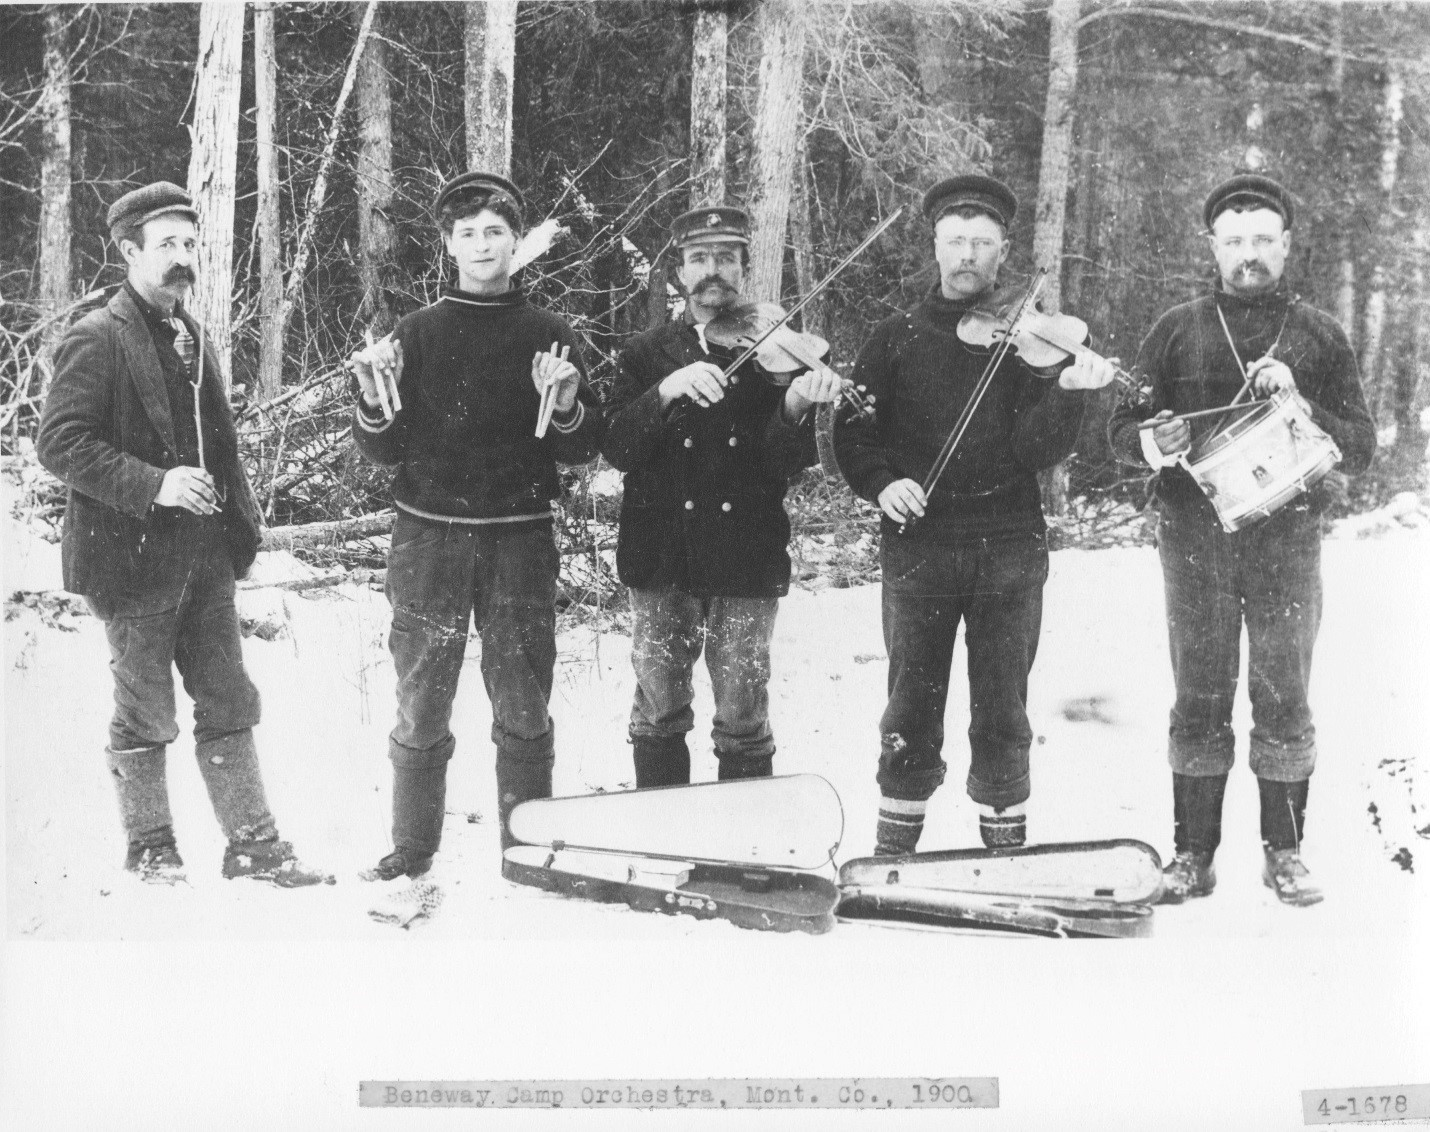 Photo of the Beneway Camp Orchestra, Montmorency County, MI, 1900